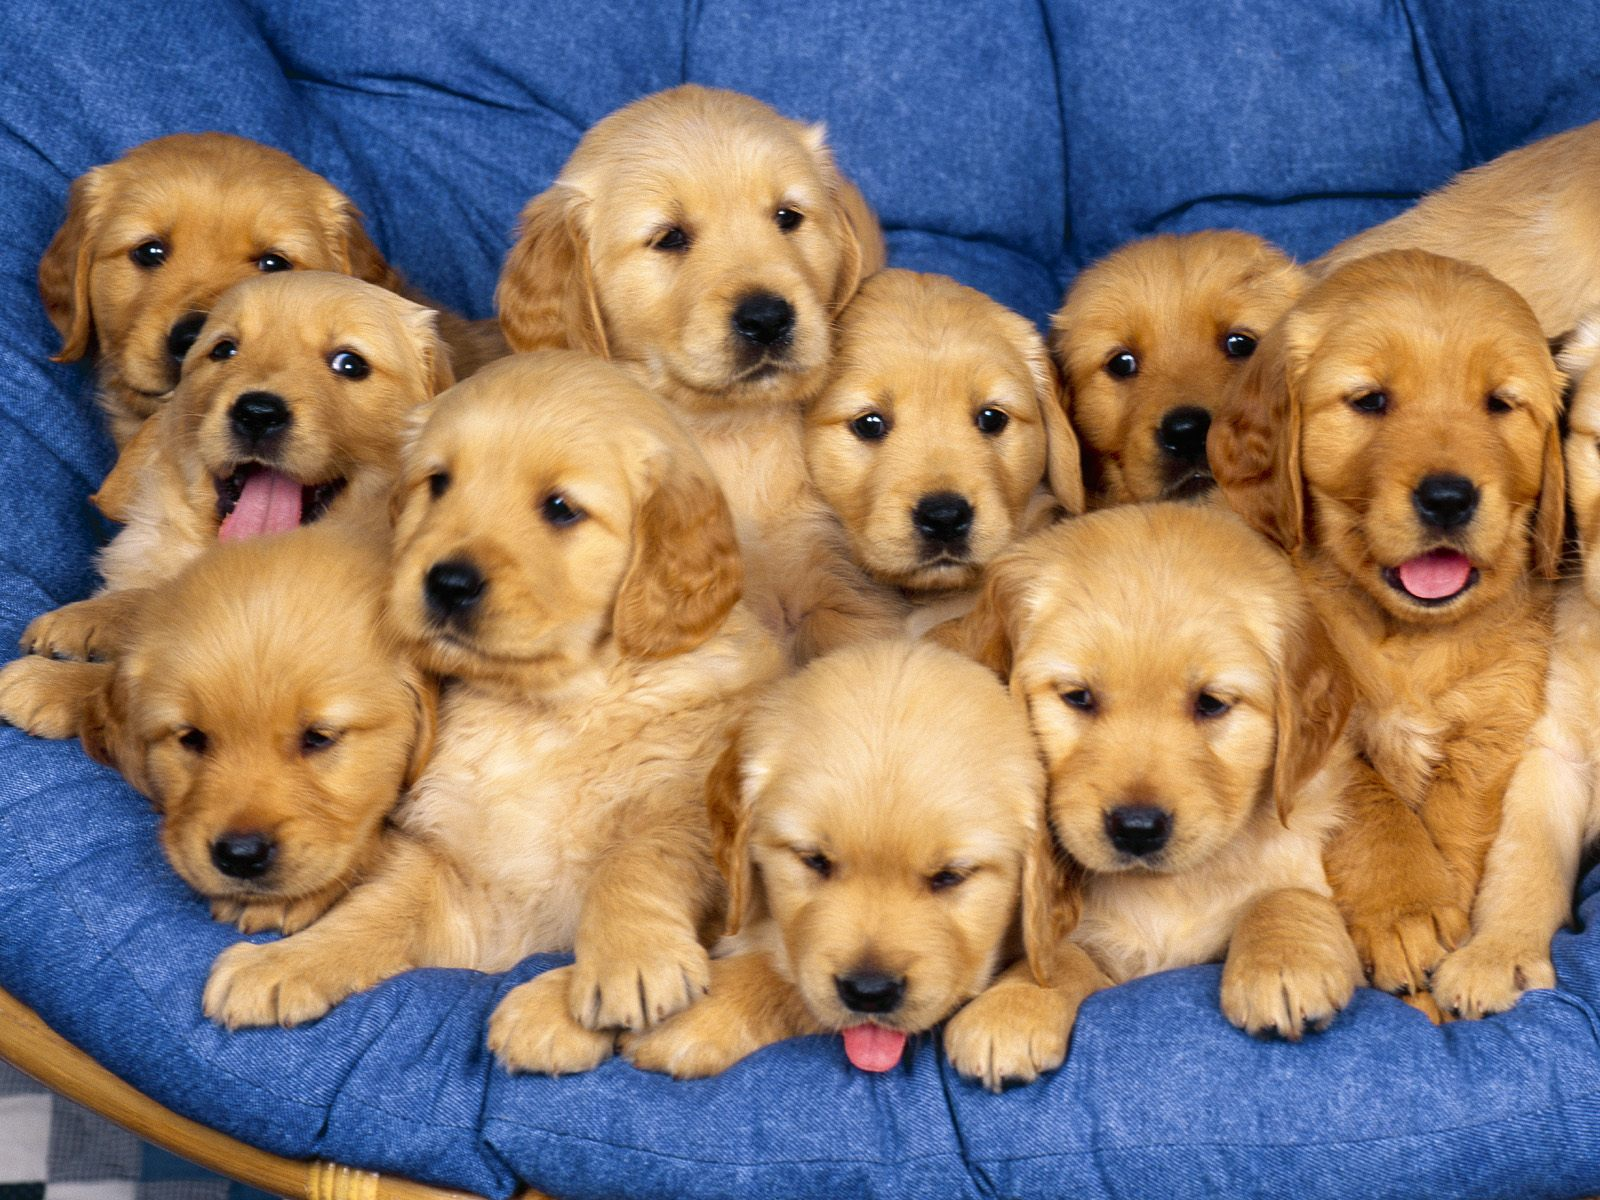 dog wallpapers free download 179 for Dog Wallpapers Download 1600x1200